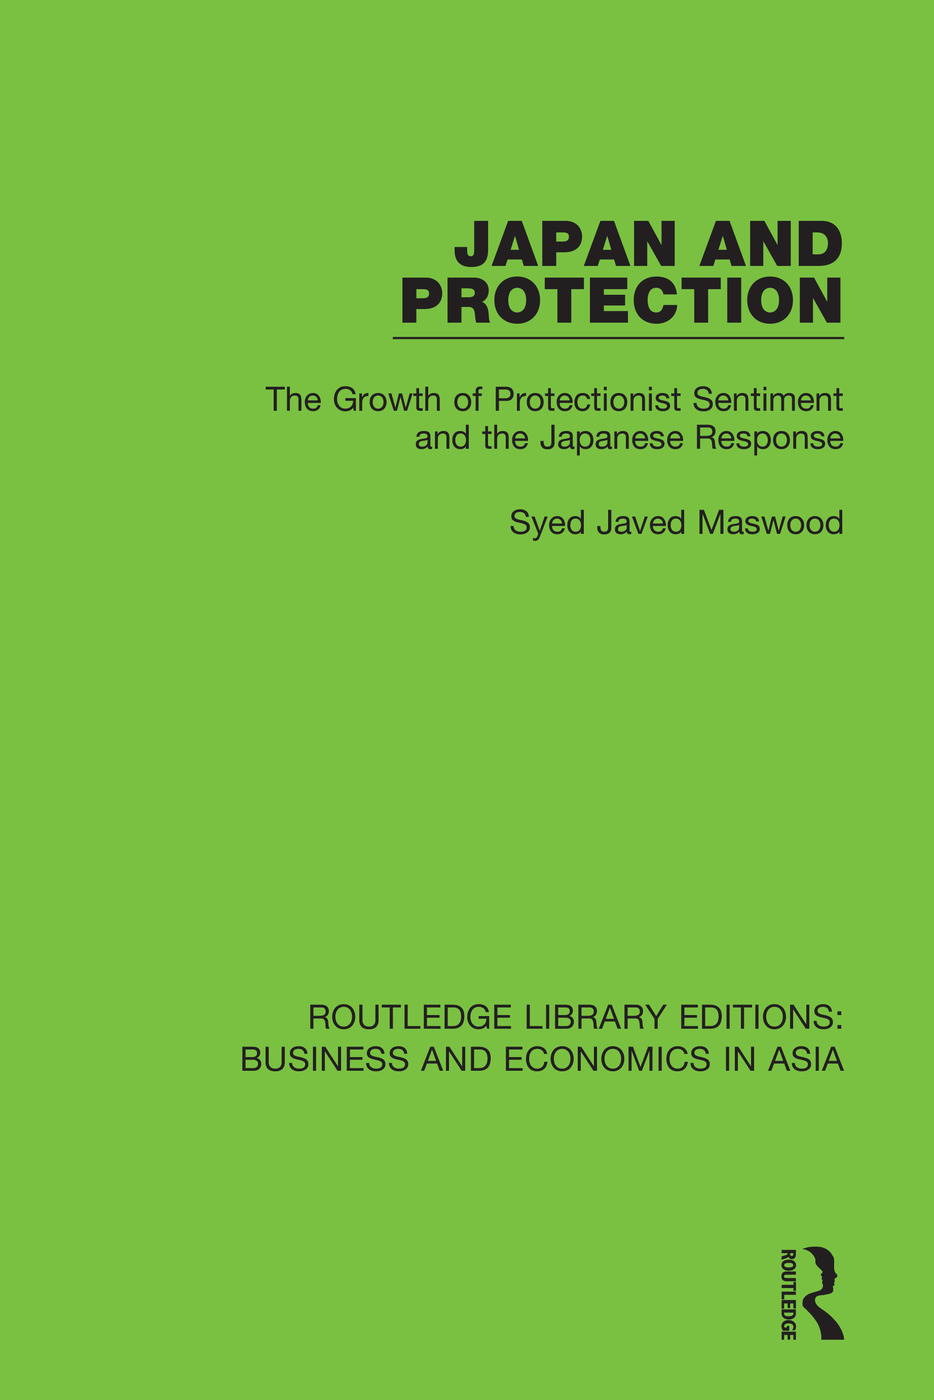 Japan and Protection: The Growth of Protectionist Sentiment and the Japanese Response book cover